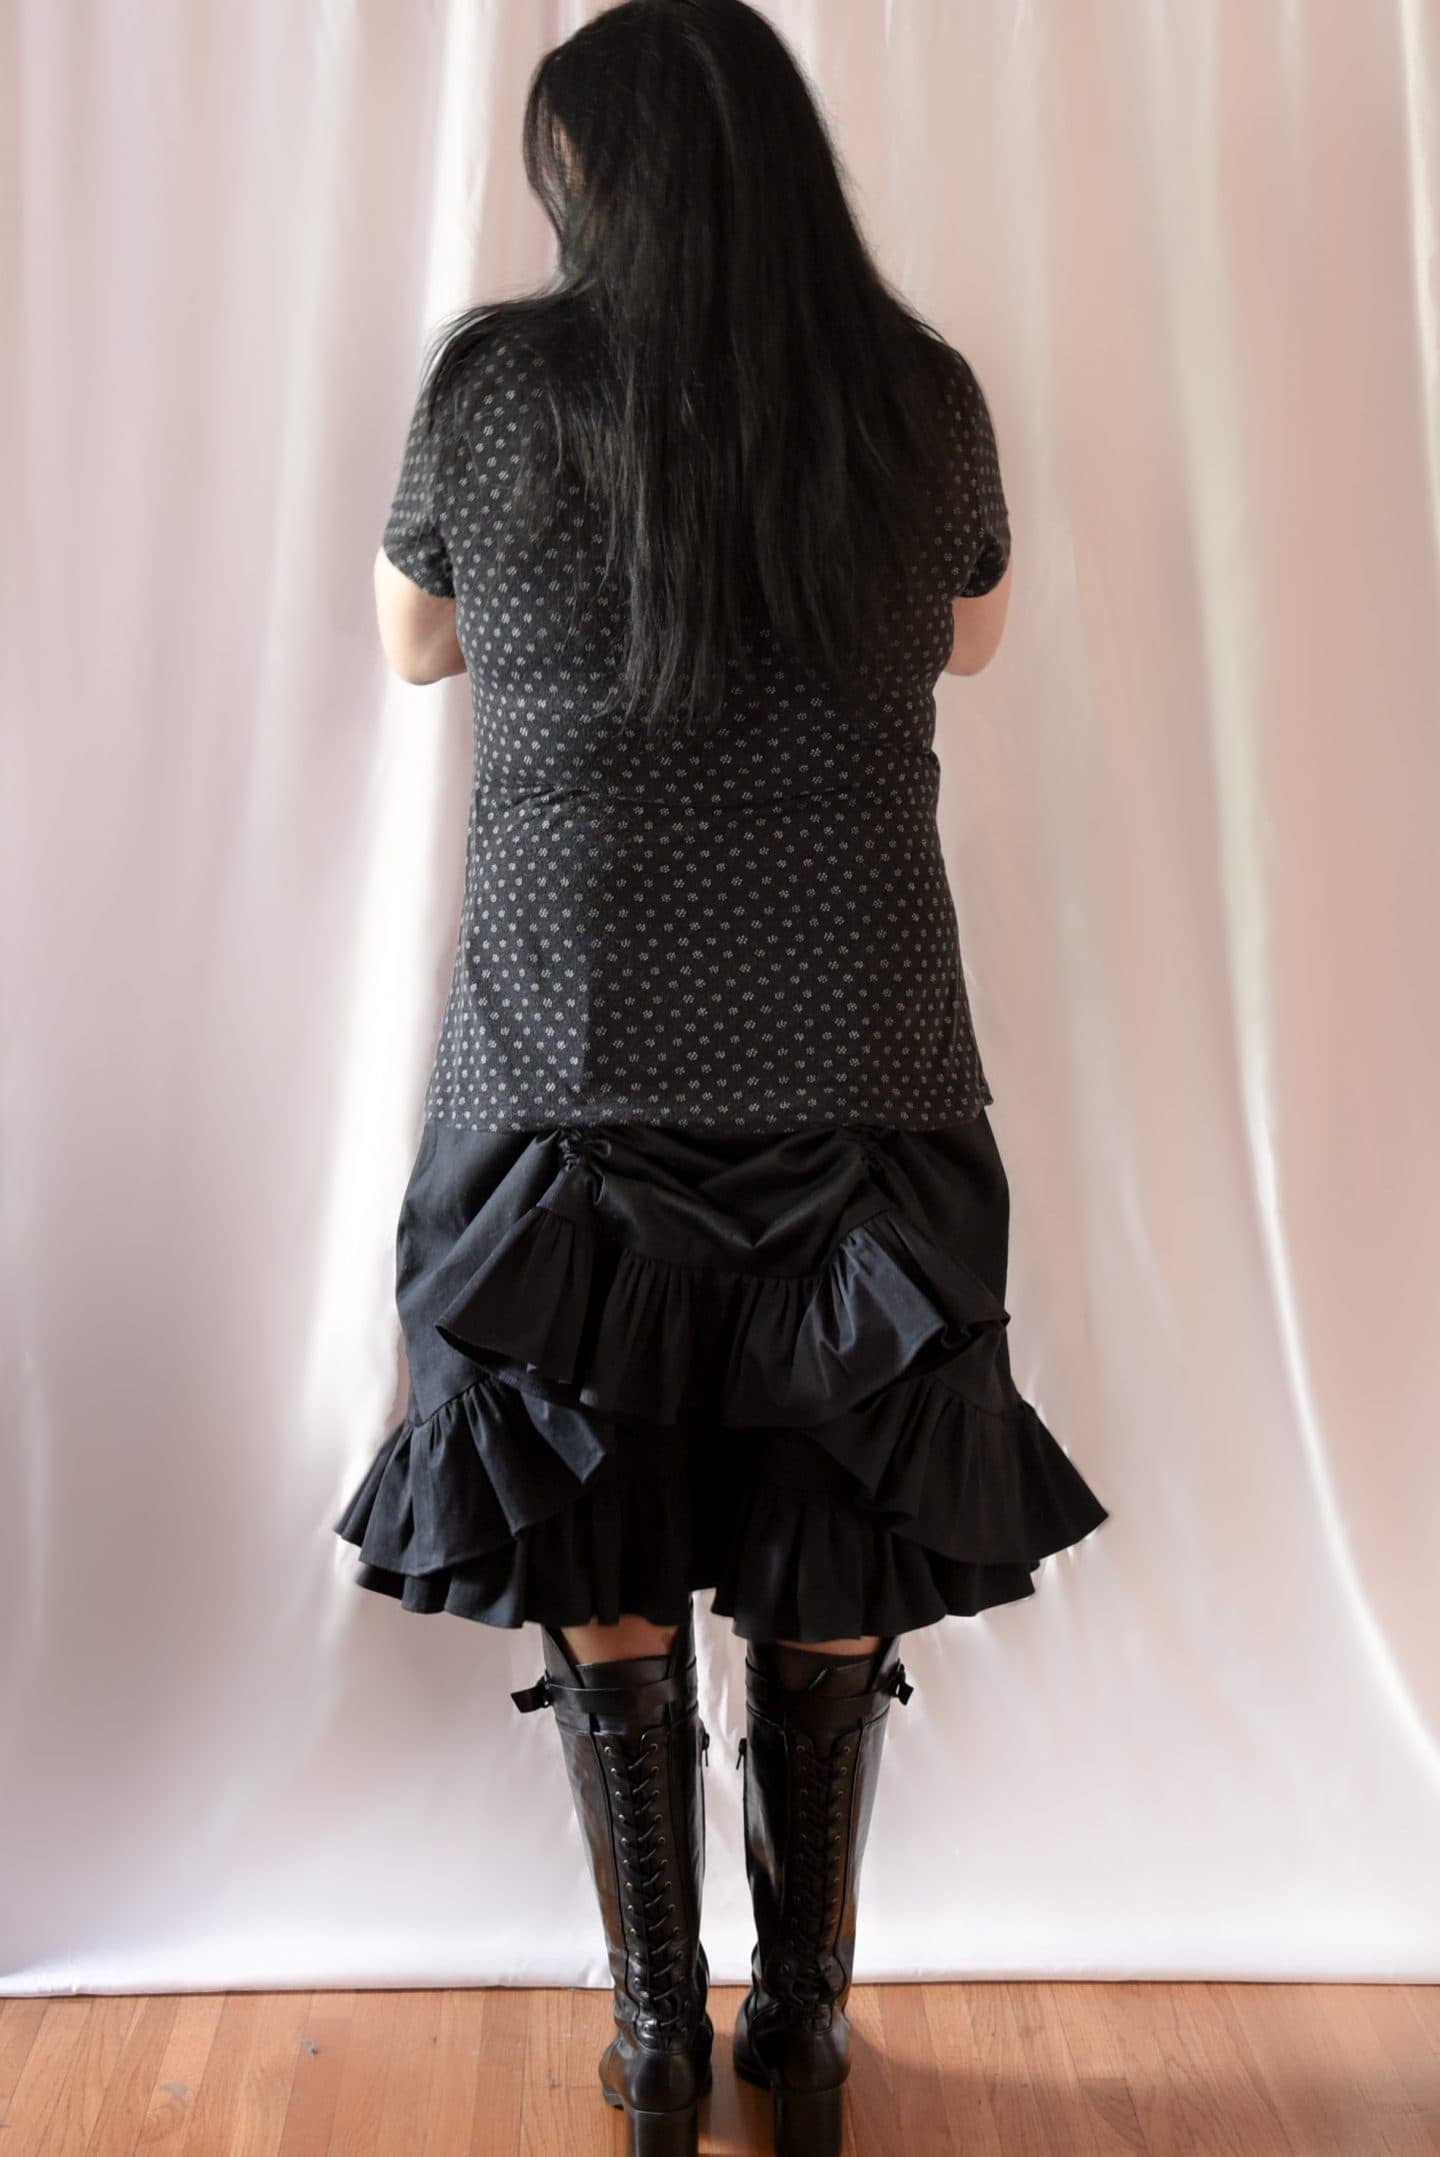 Image of woman back to the camera with long black hair wearing a polka-dotted T-shirt and a Victorian-inspired black skirt with with two layers with the top skirt with two channels raised to created a bustle effect